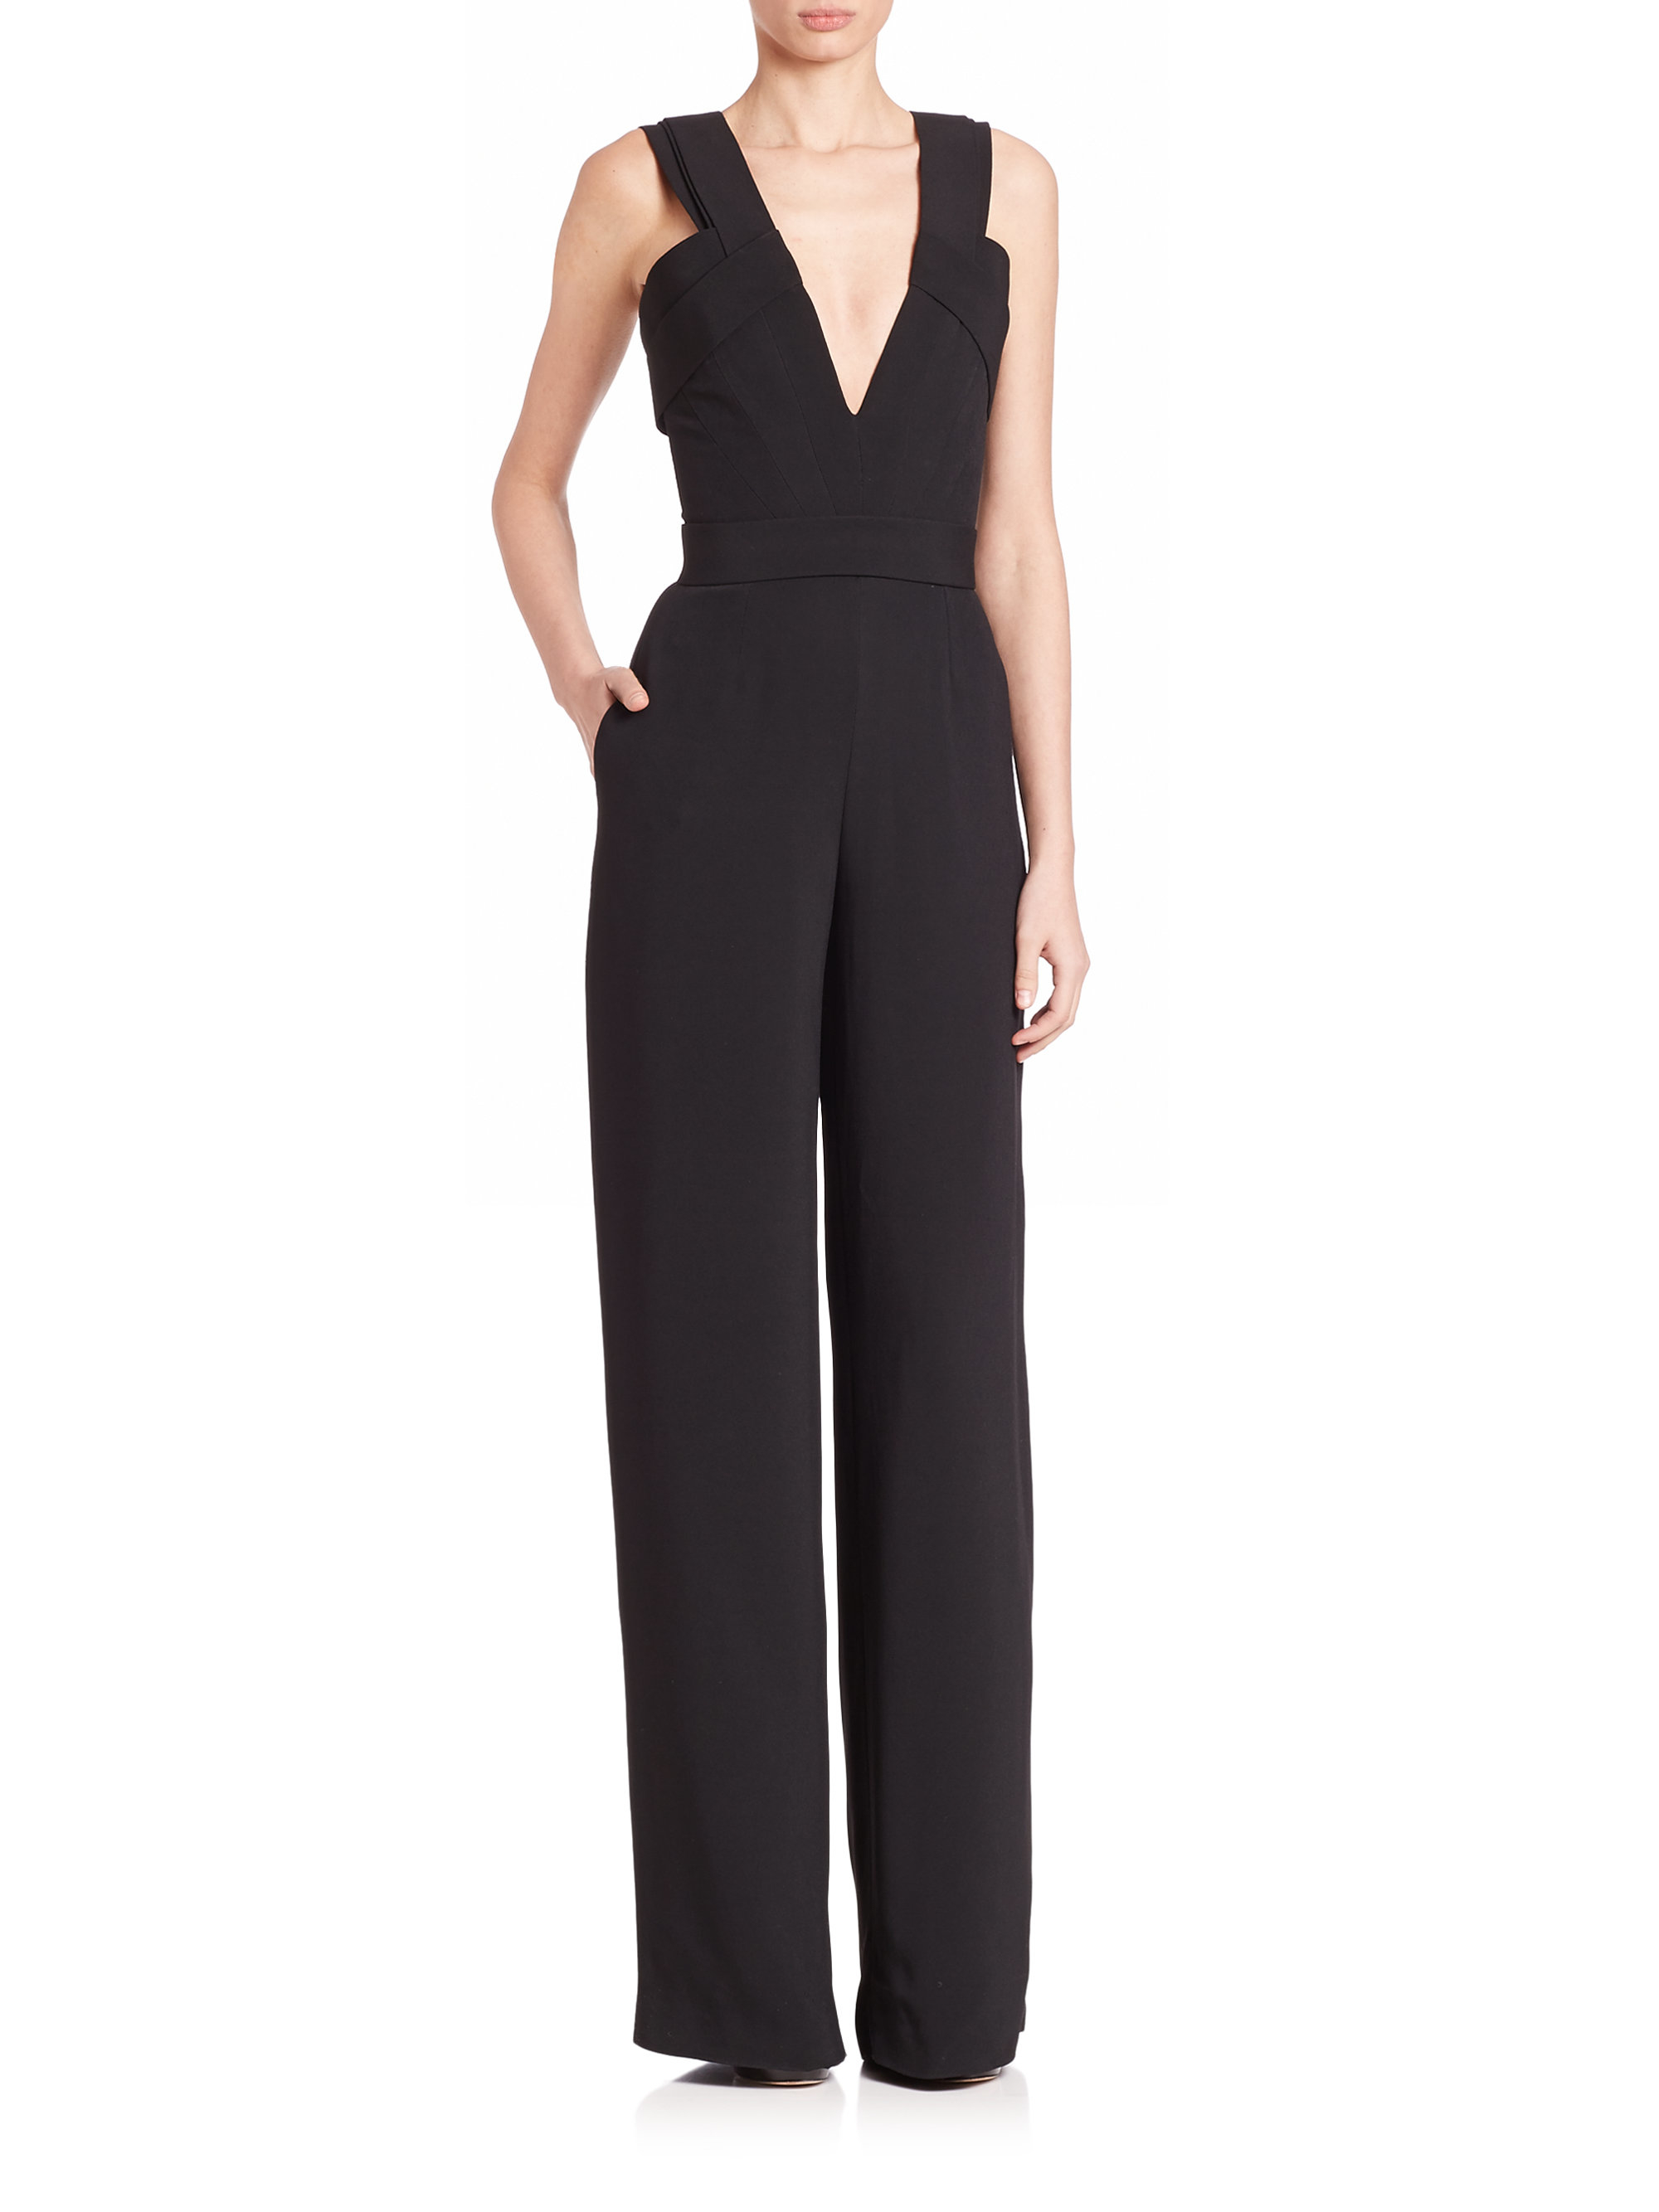 7694a737ace9 Lyst - Brandon Maxwell Crepe Jumpsuit in Black